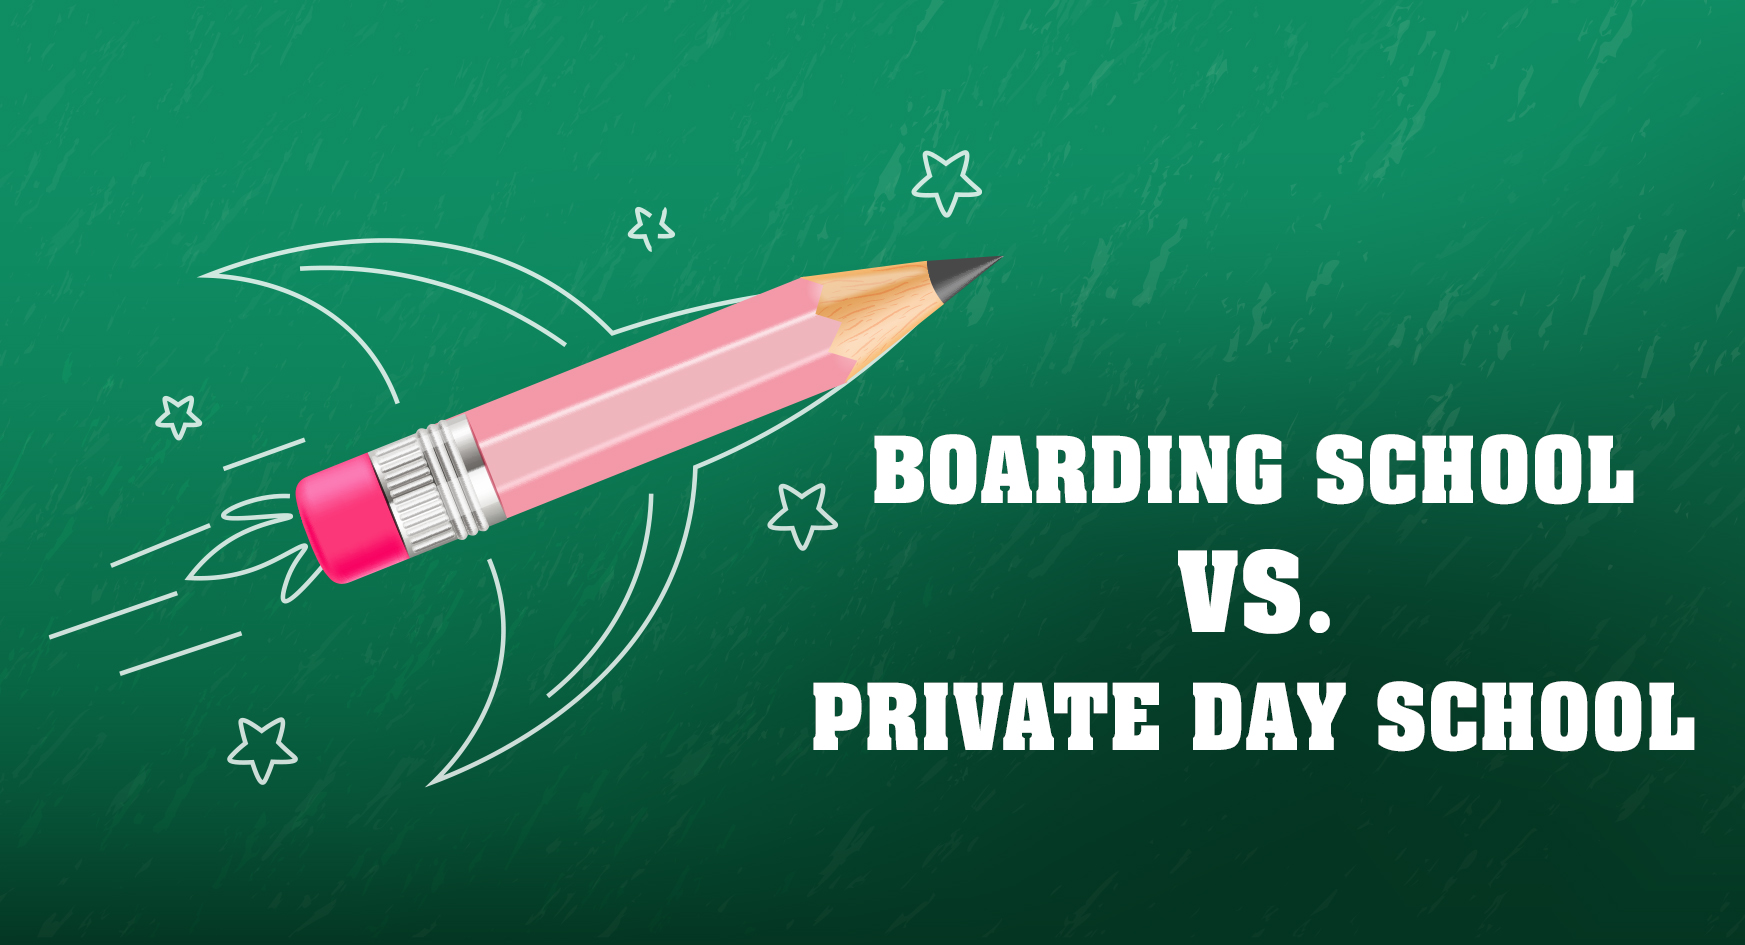 Boarding School vs. Private Day School